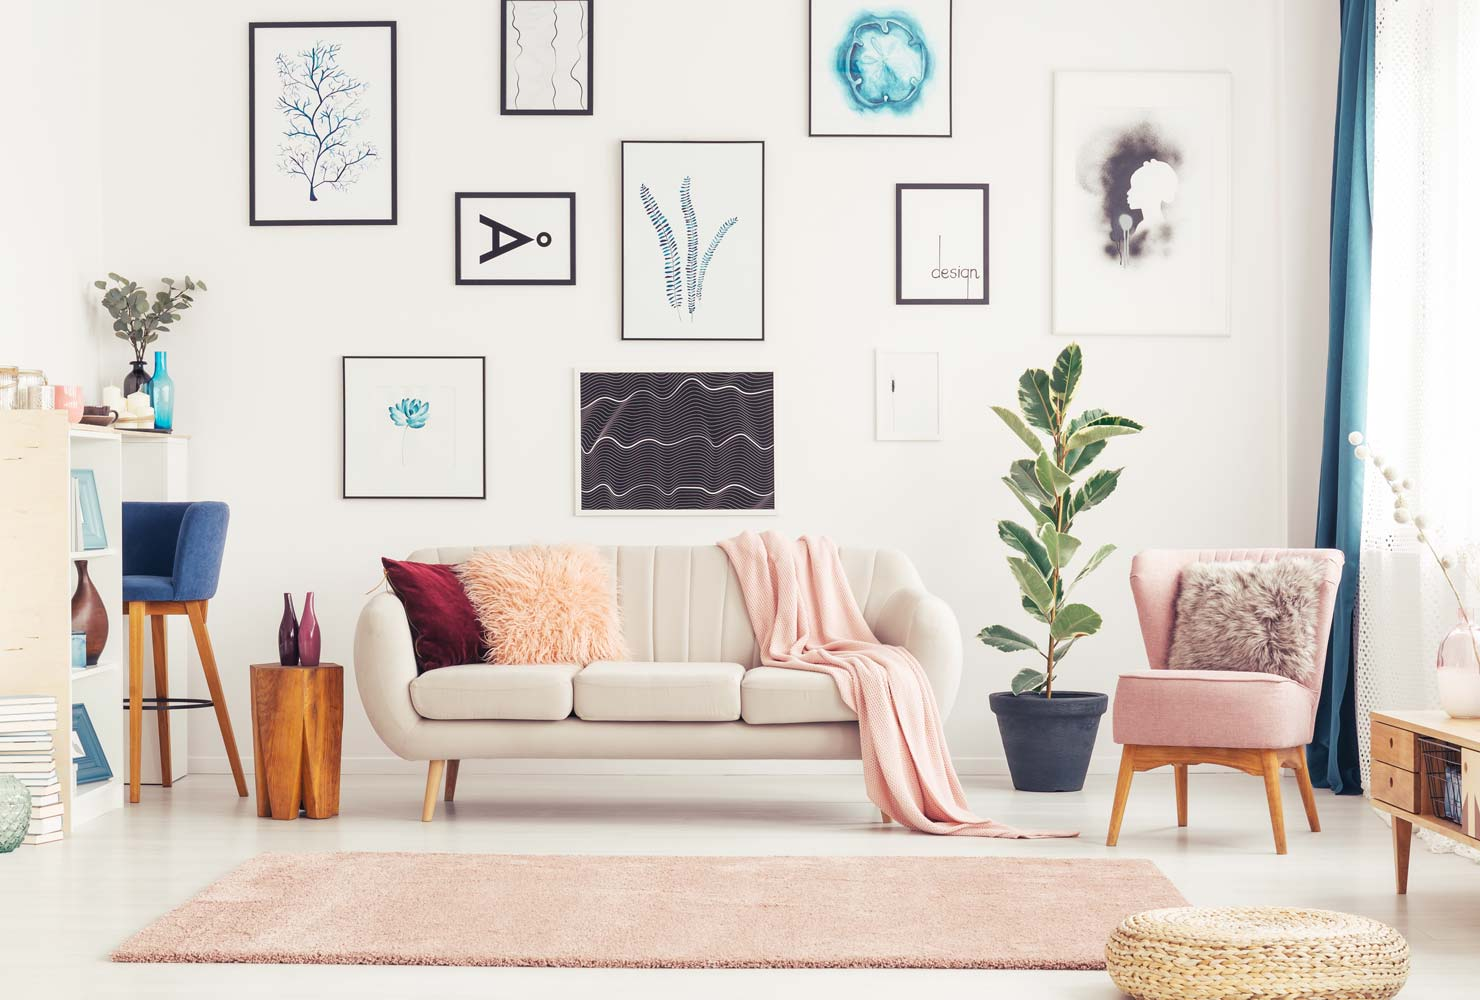 Large living room wall with art prints and colorful decor.